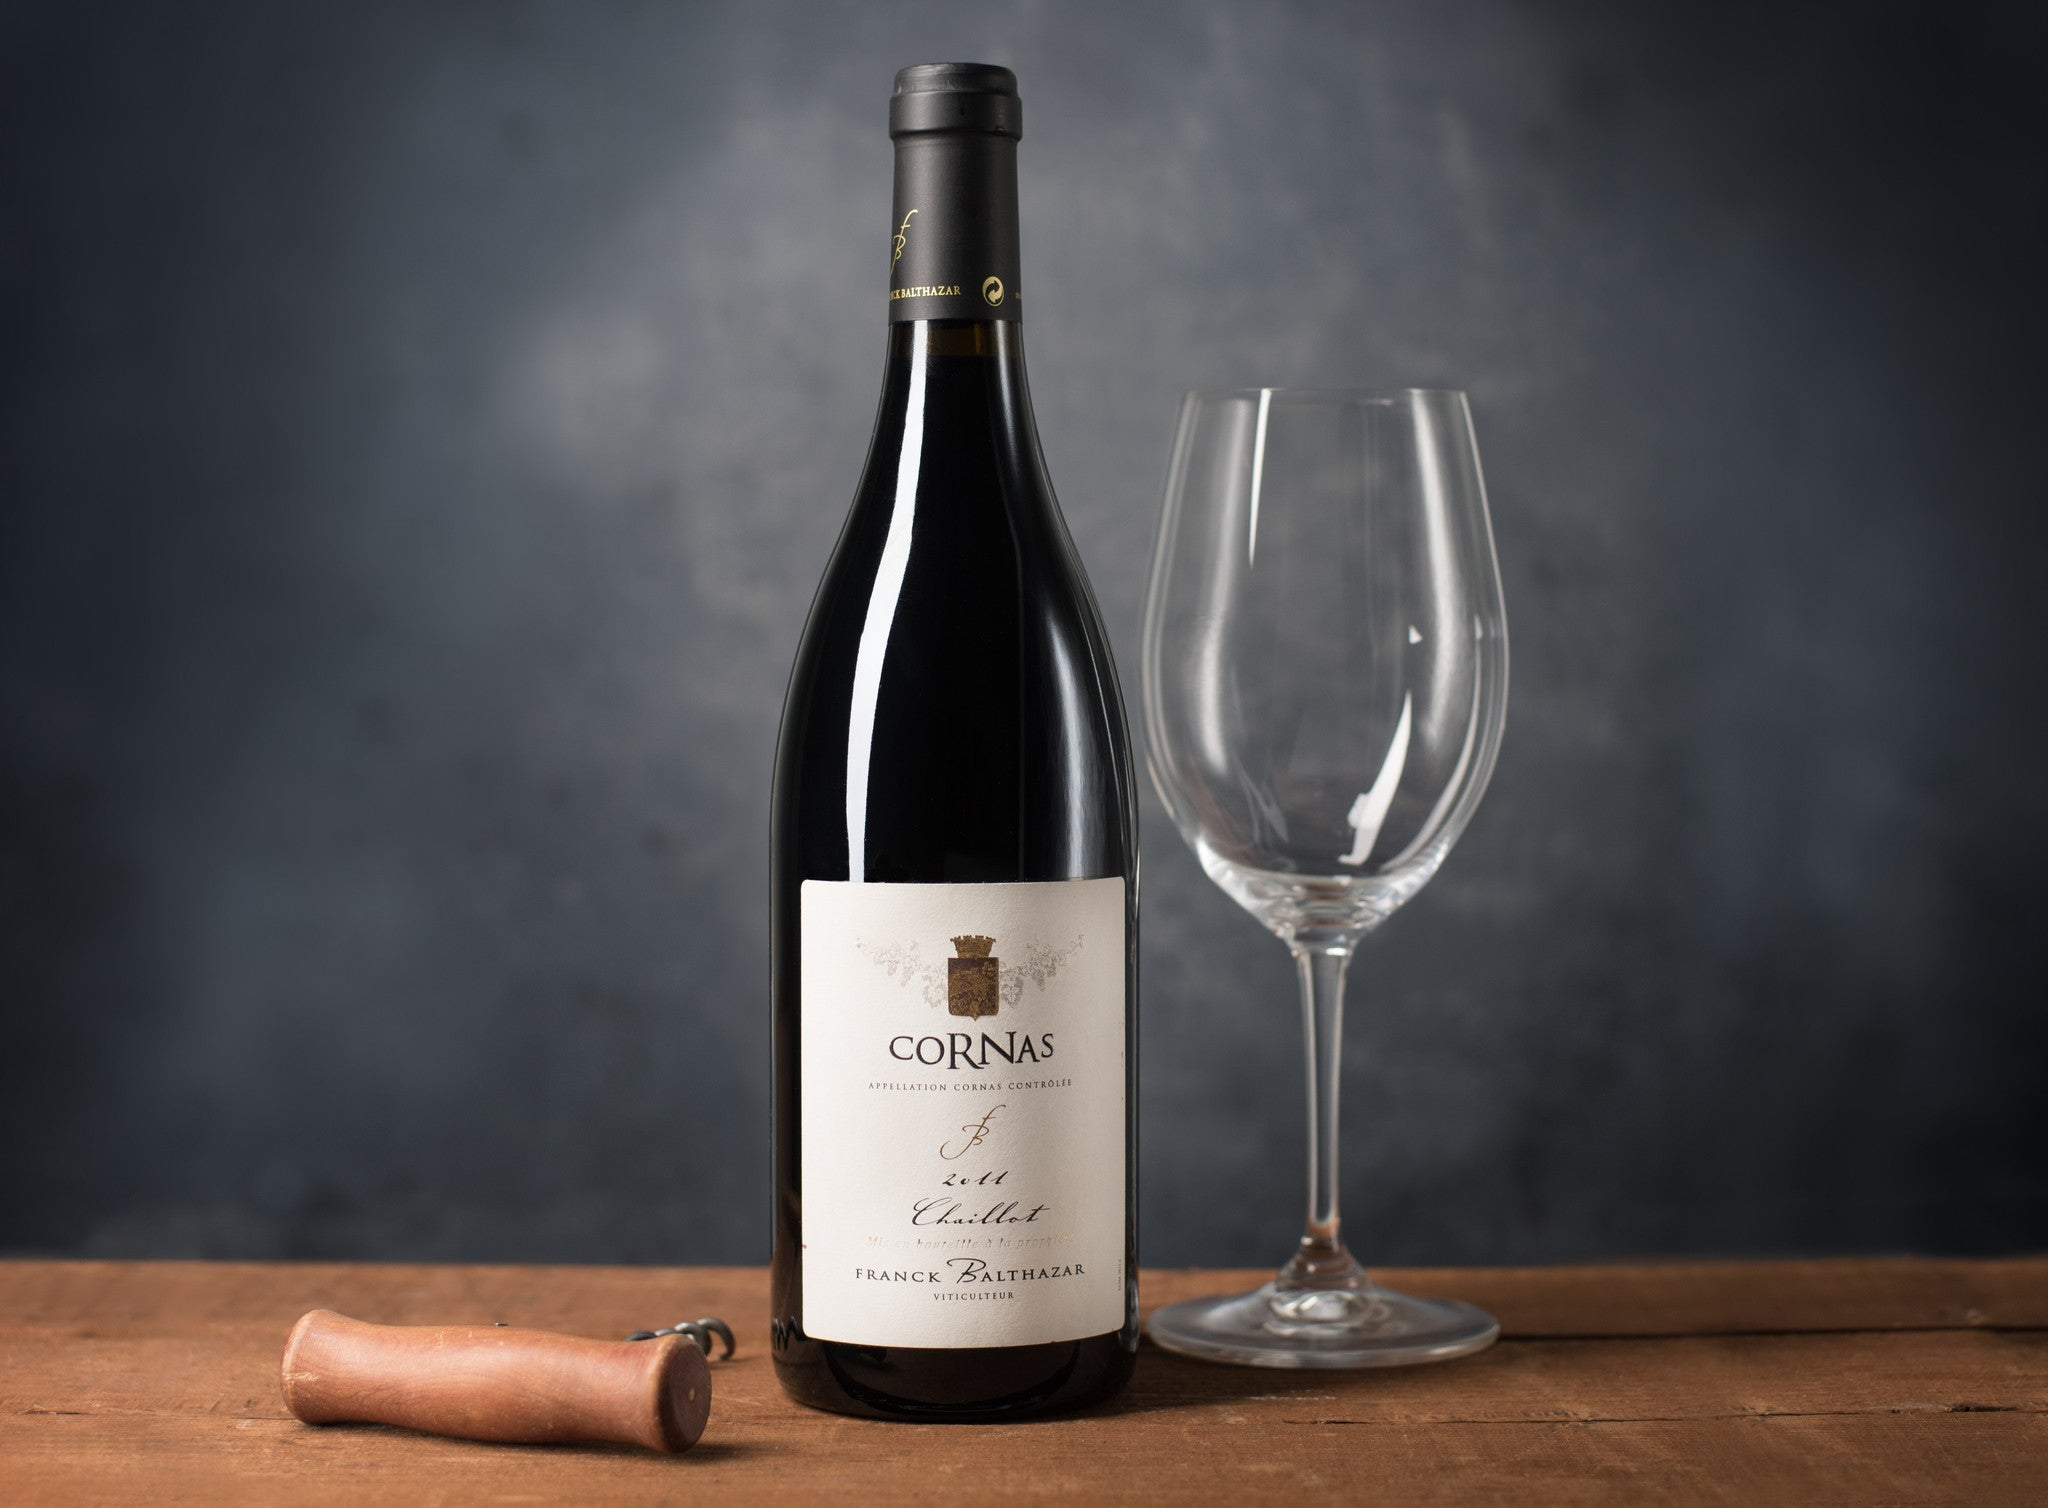 Franck Balthazar Cuvée Chaillot Cornas 2015 - Cellar Direct